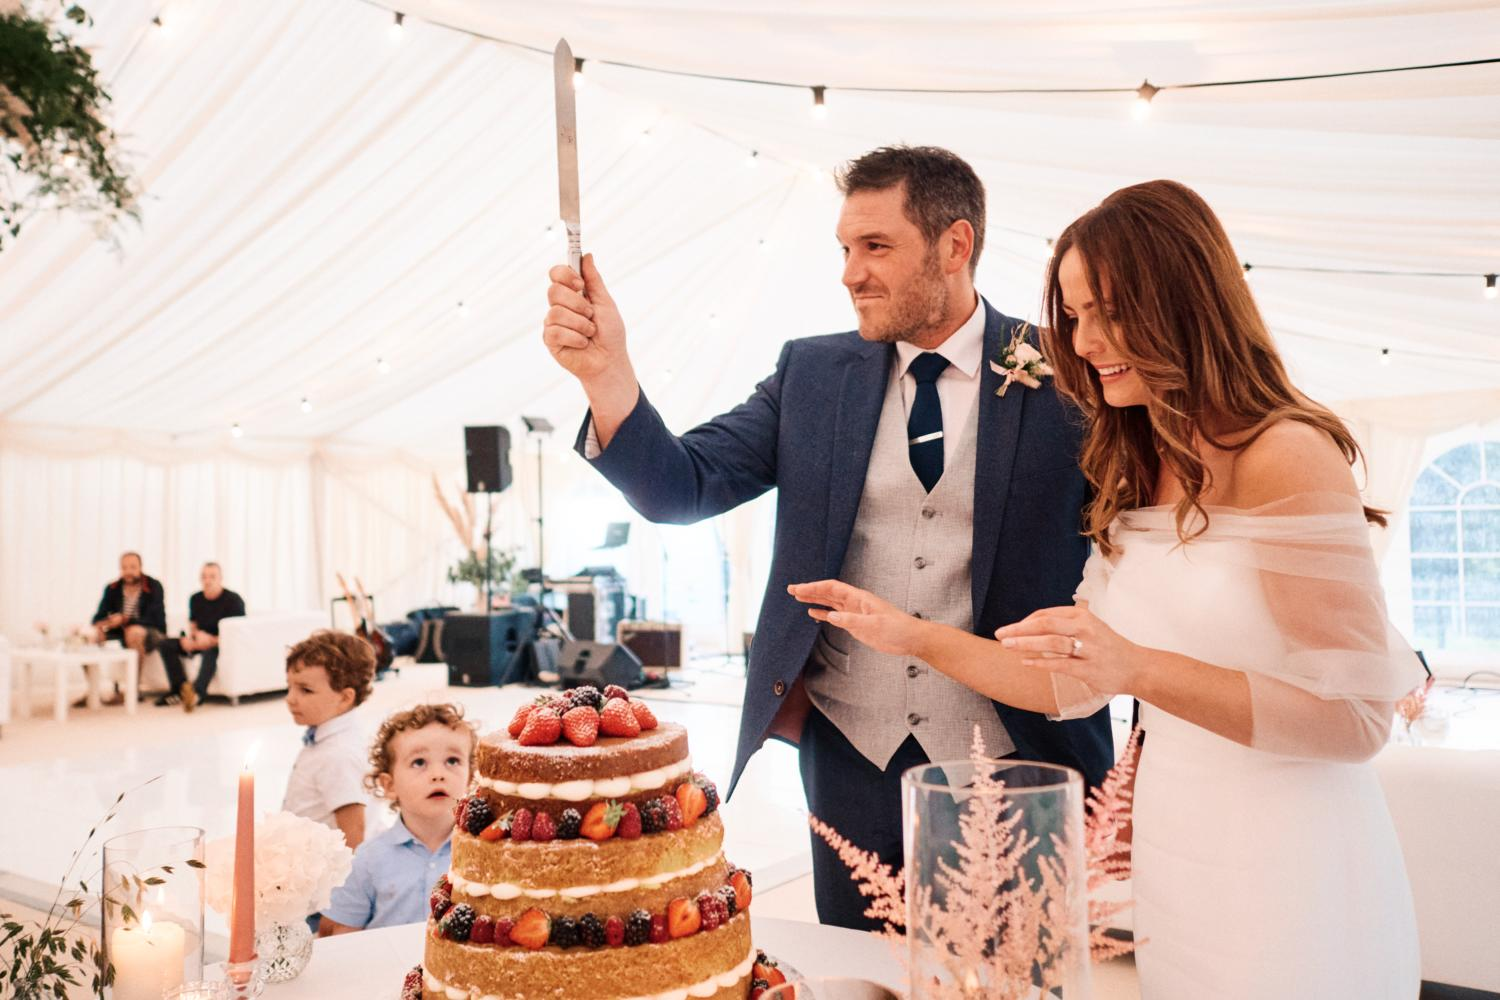 A bride and groom cut their wedding cake in front of a child